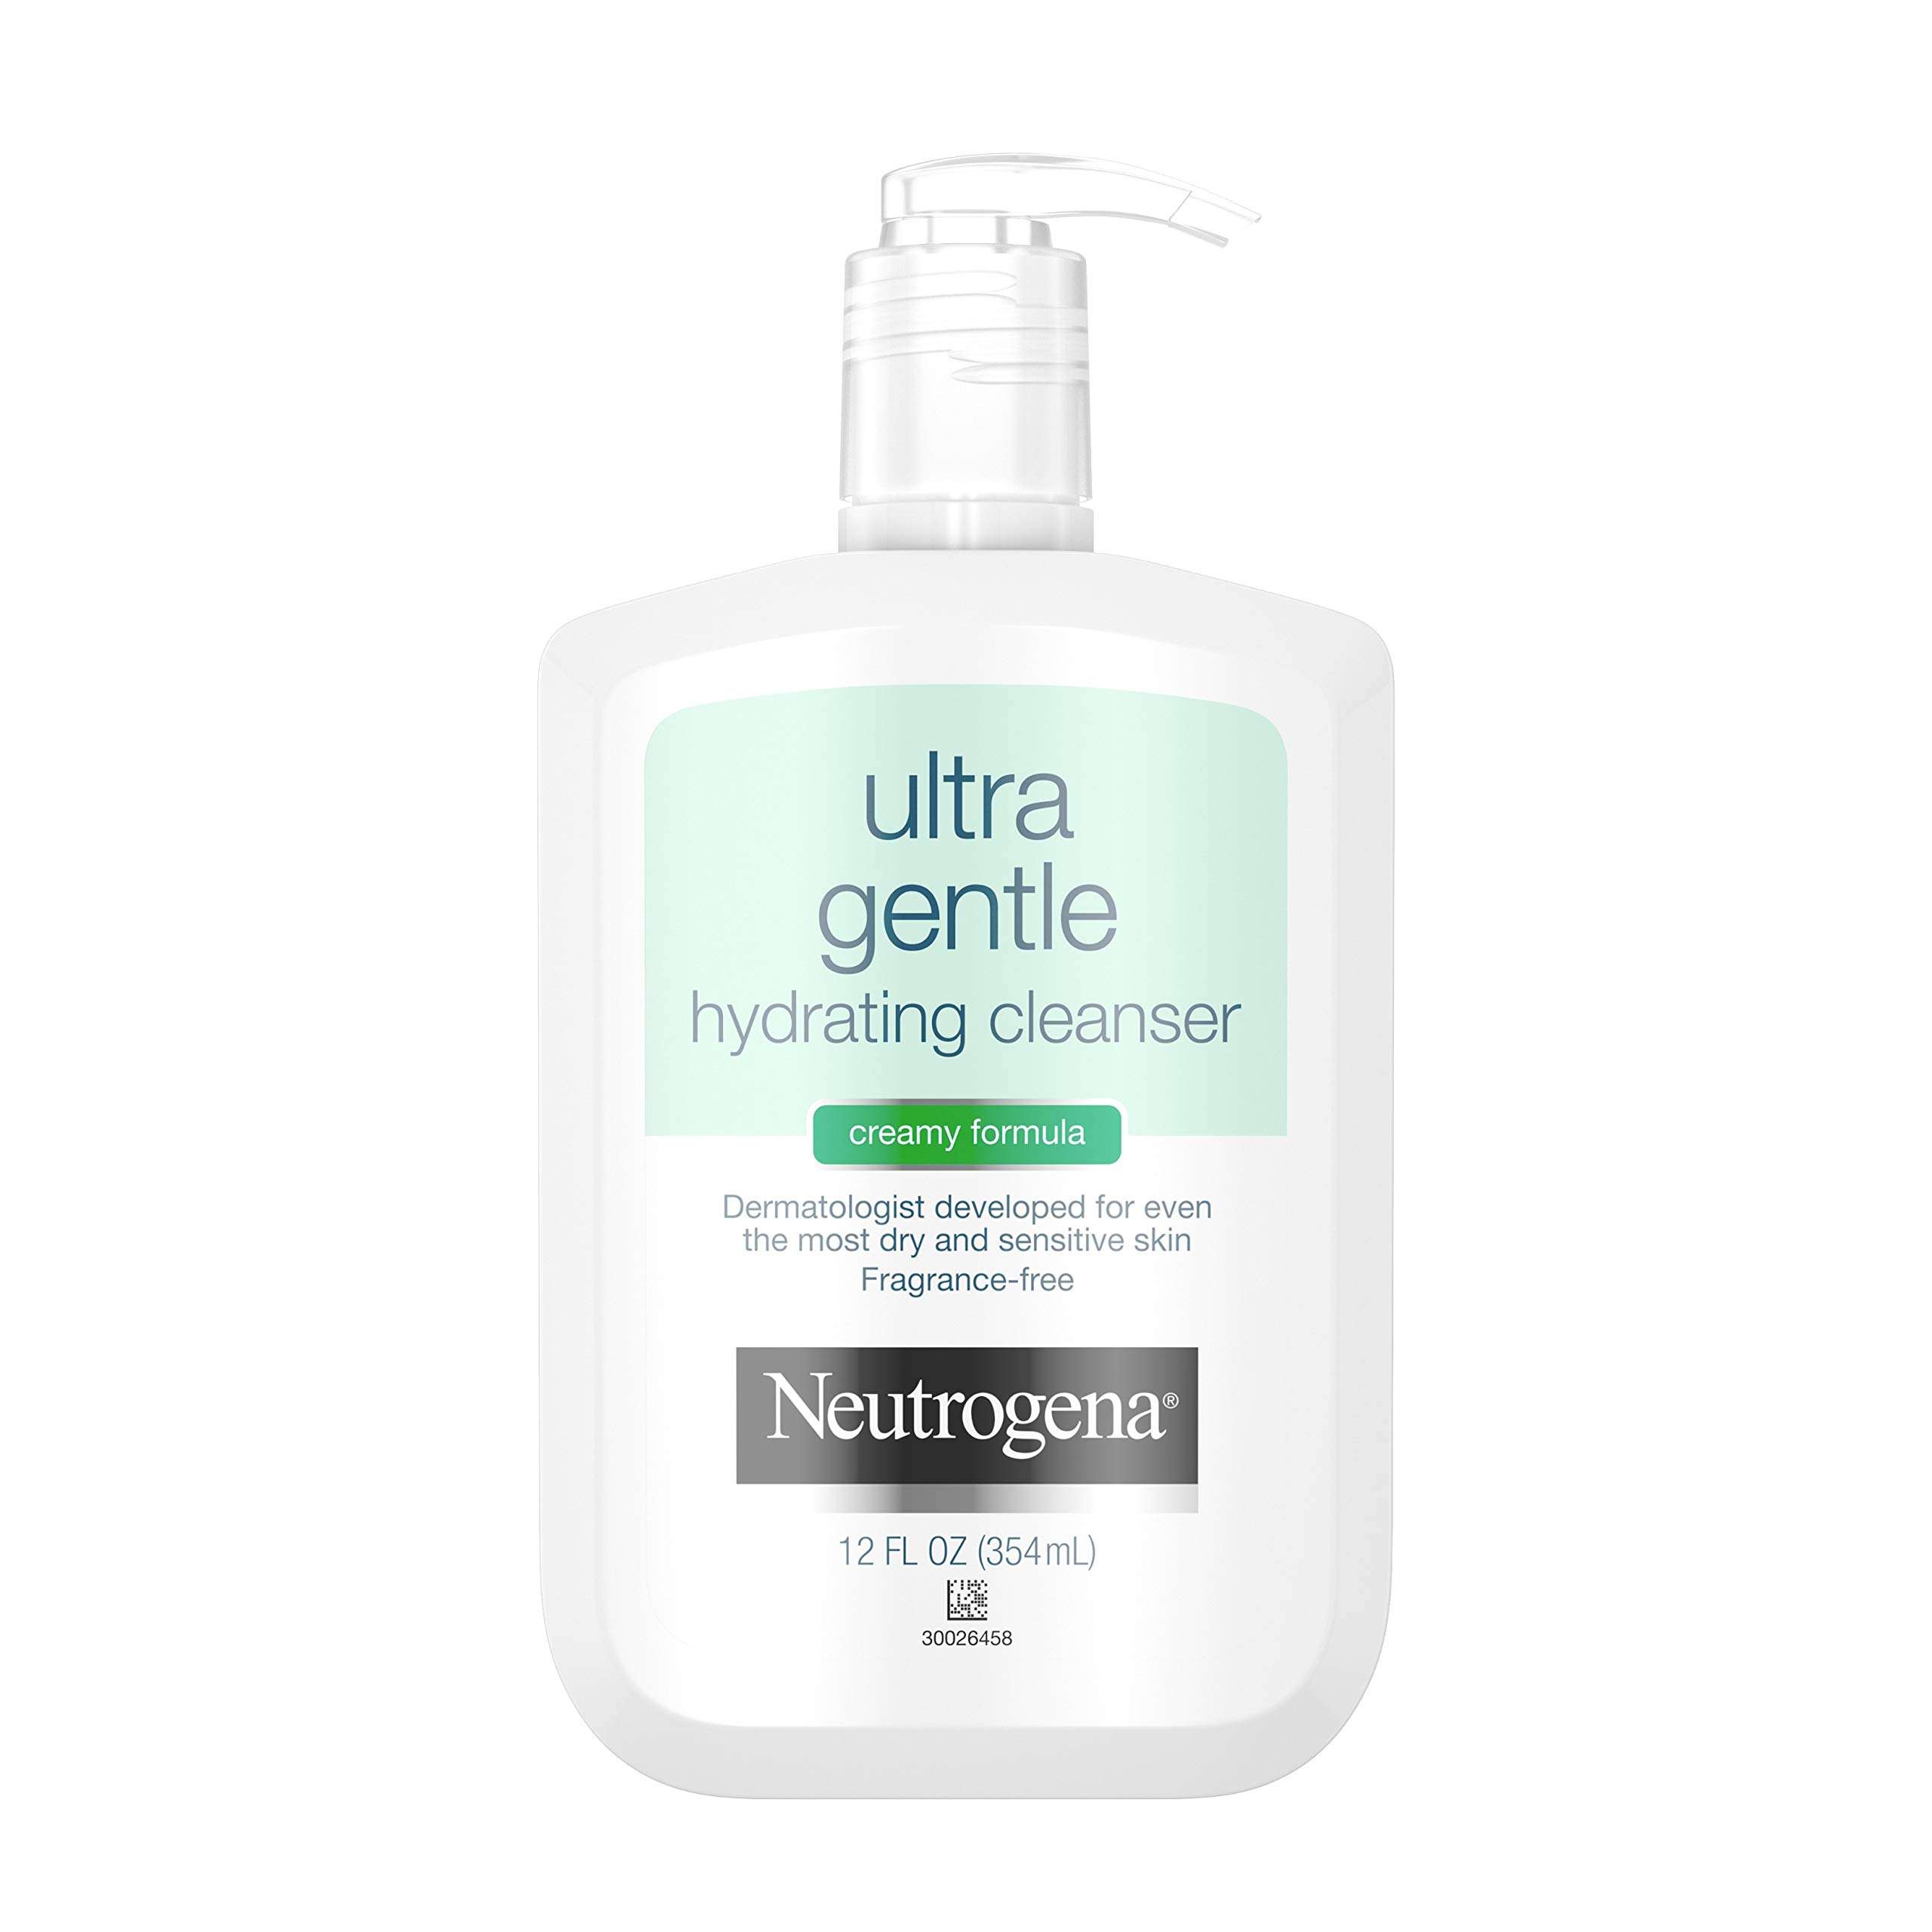 Neutrogena Ultra Gentle Hydrating Daily Facial Cleanser for Sensitive Skin, Acne, Eczema & Rosacea, Oil-Free, Soap-Free, Hypoallergenic & Non-Comedogenic Creamy Face Wash, 12 fl. Oz